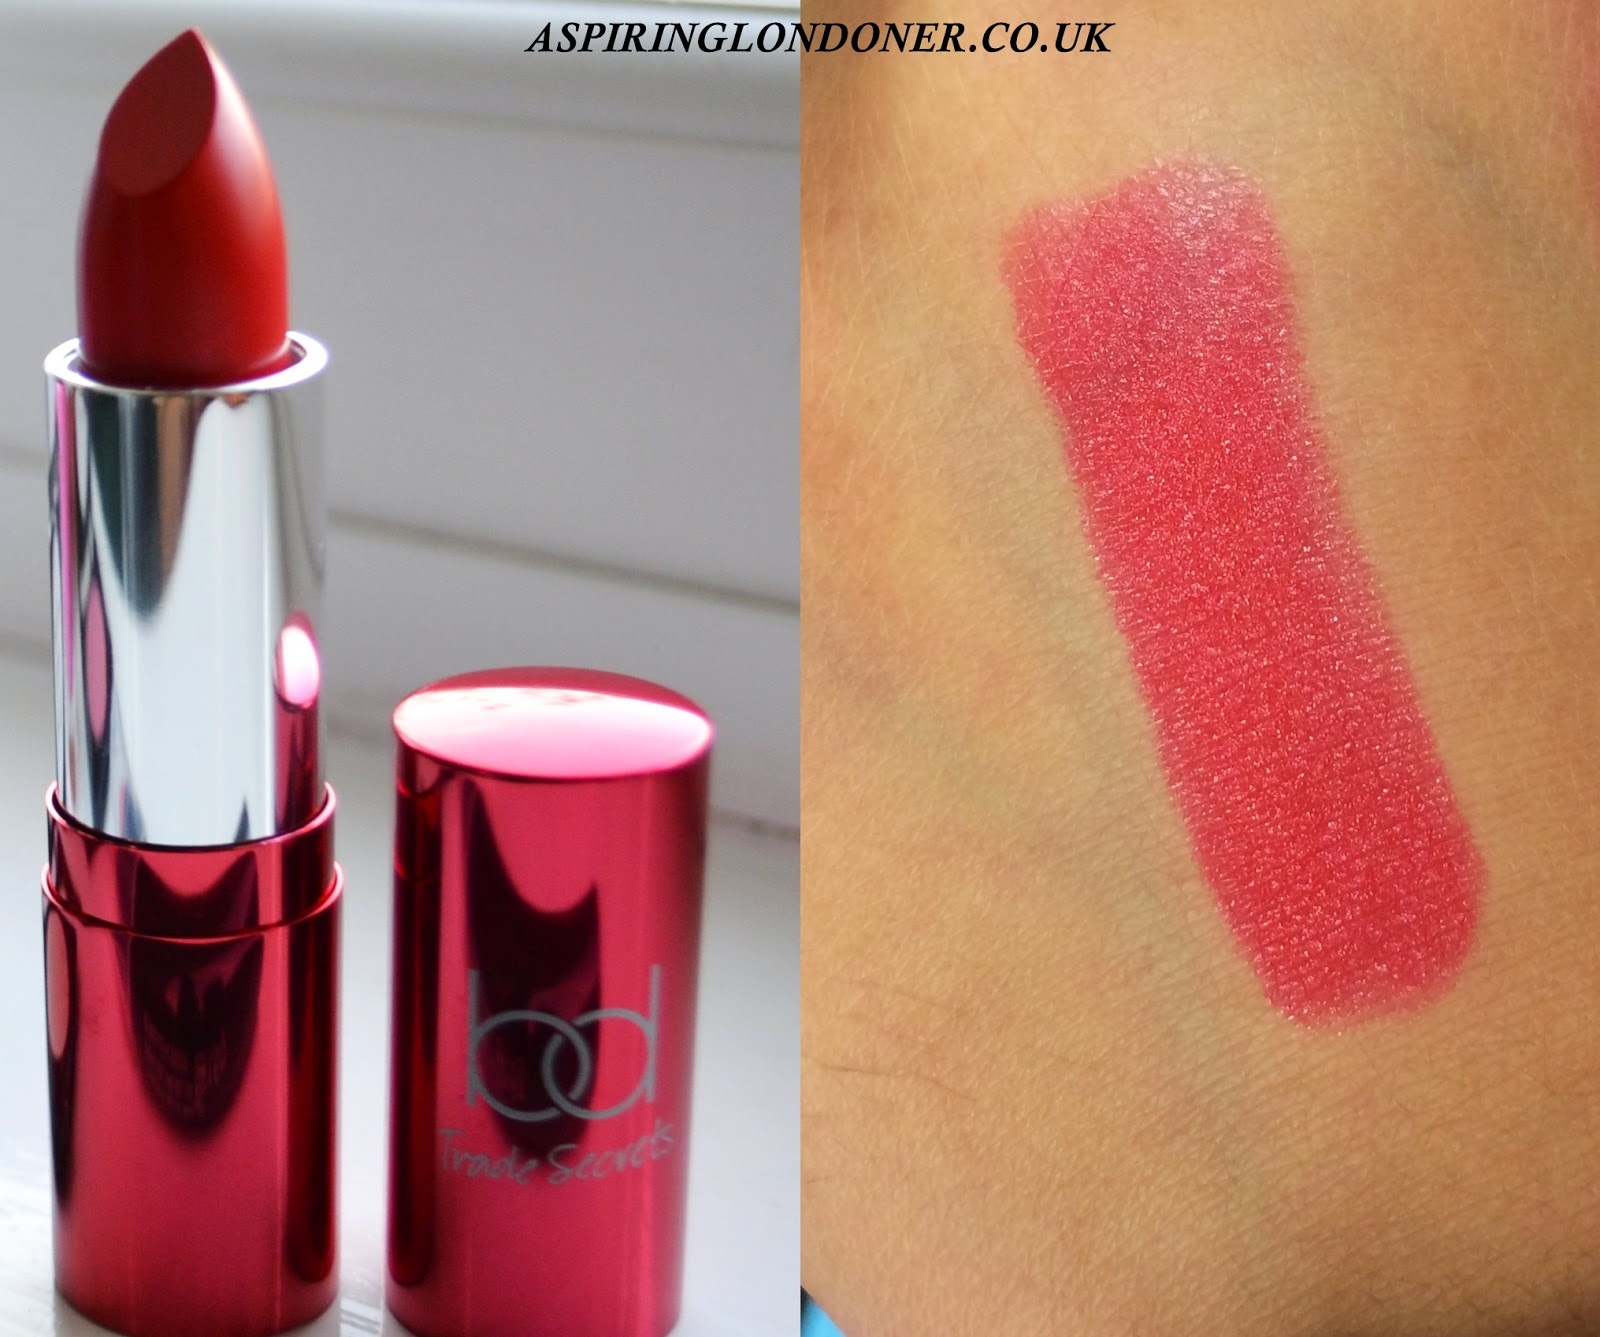 BD Trade Secrets Velvet Cream Lipstick in Runway - Aspiring Londoner